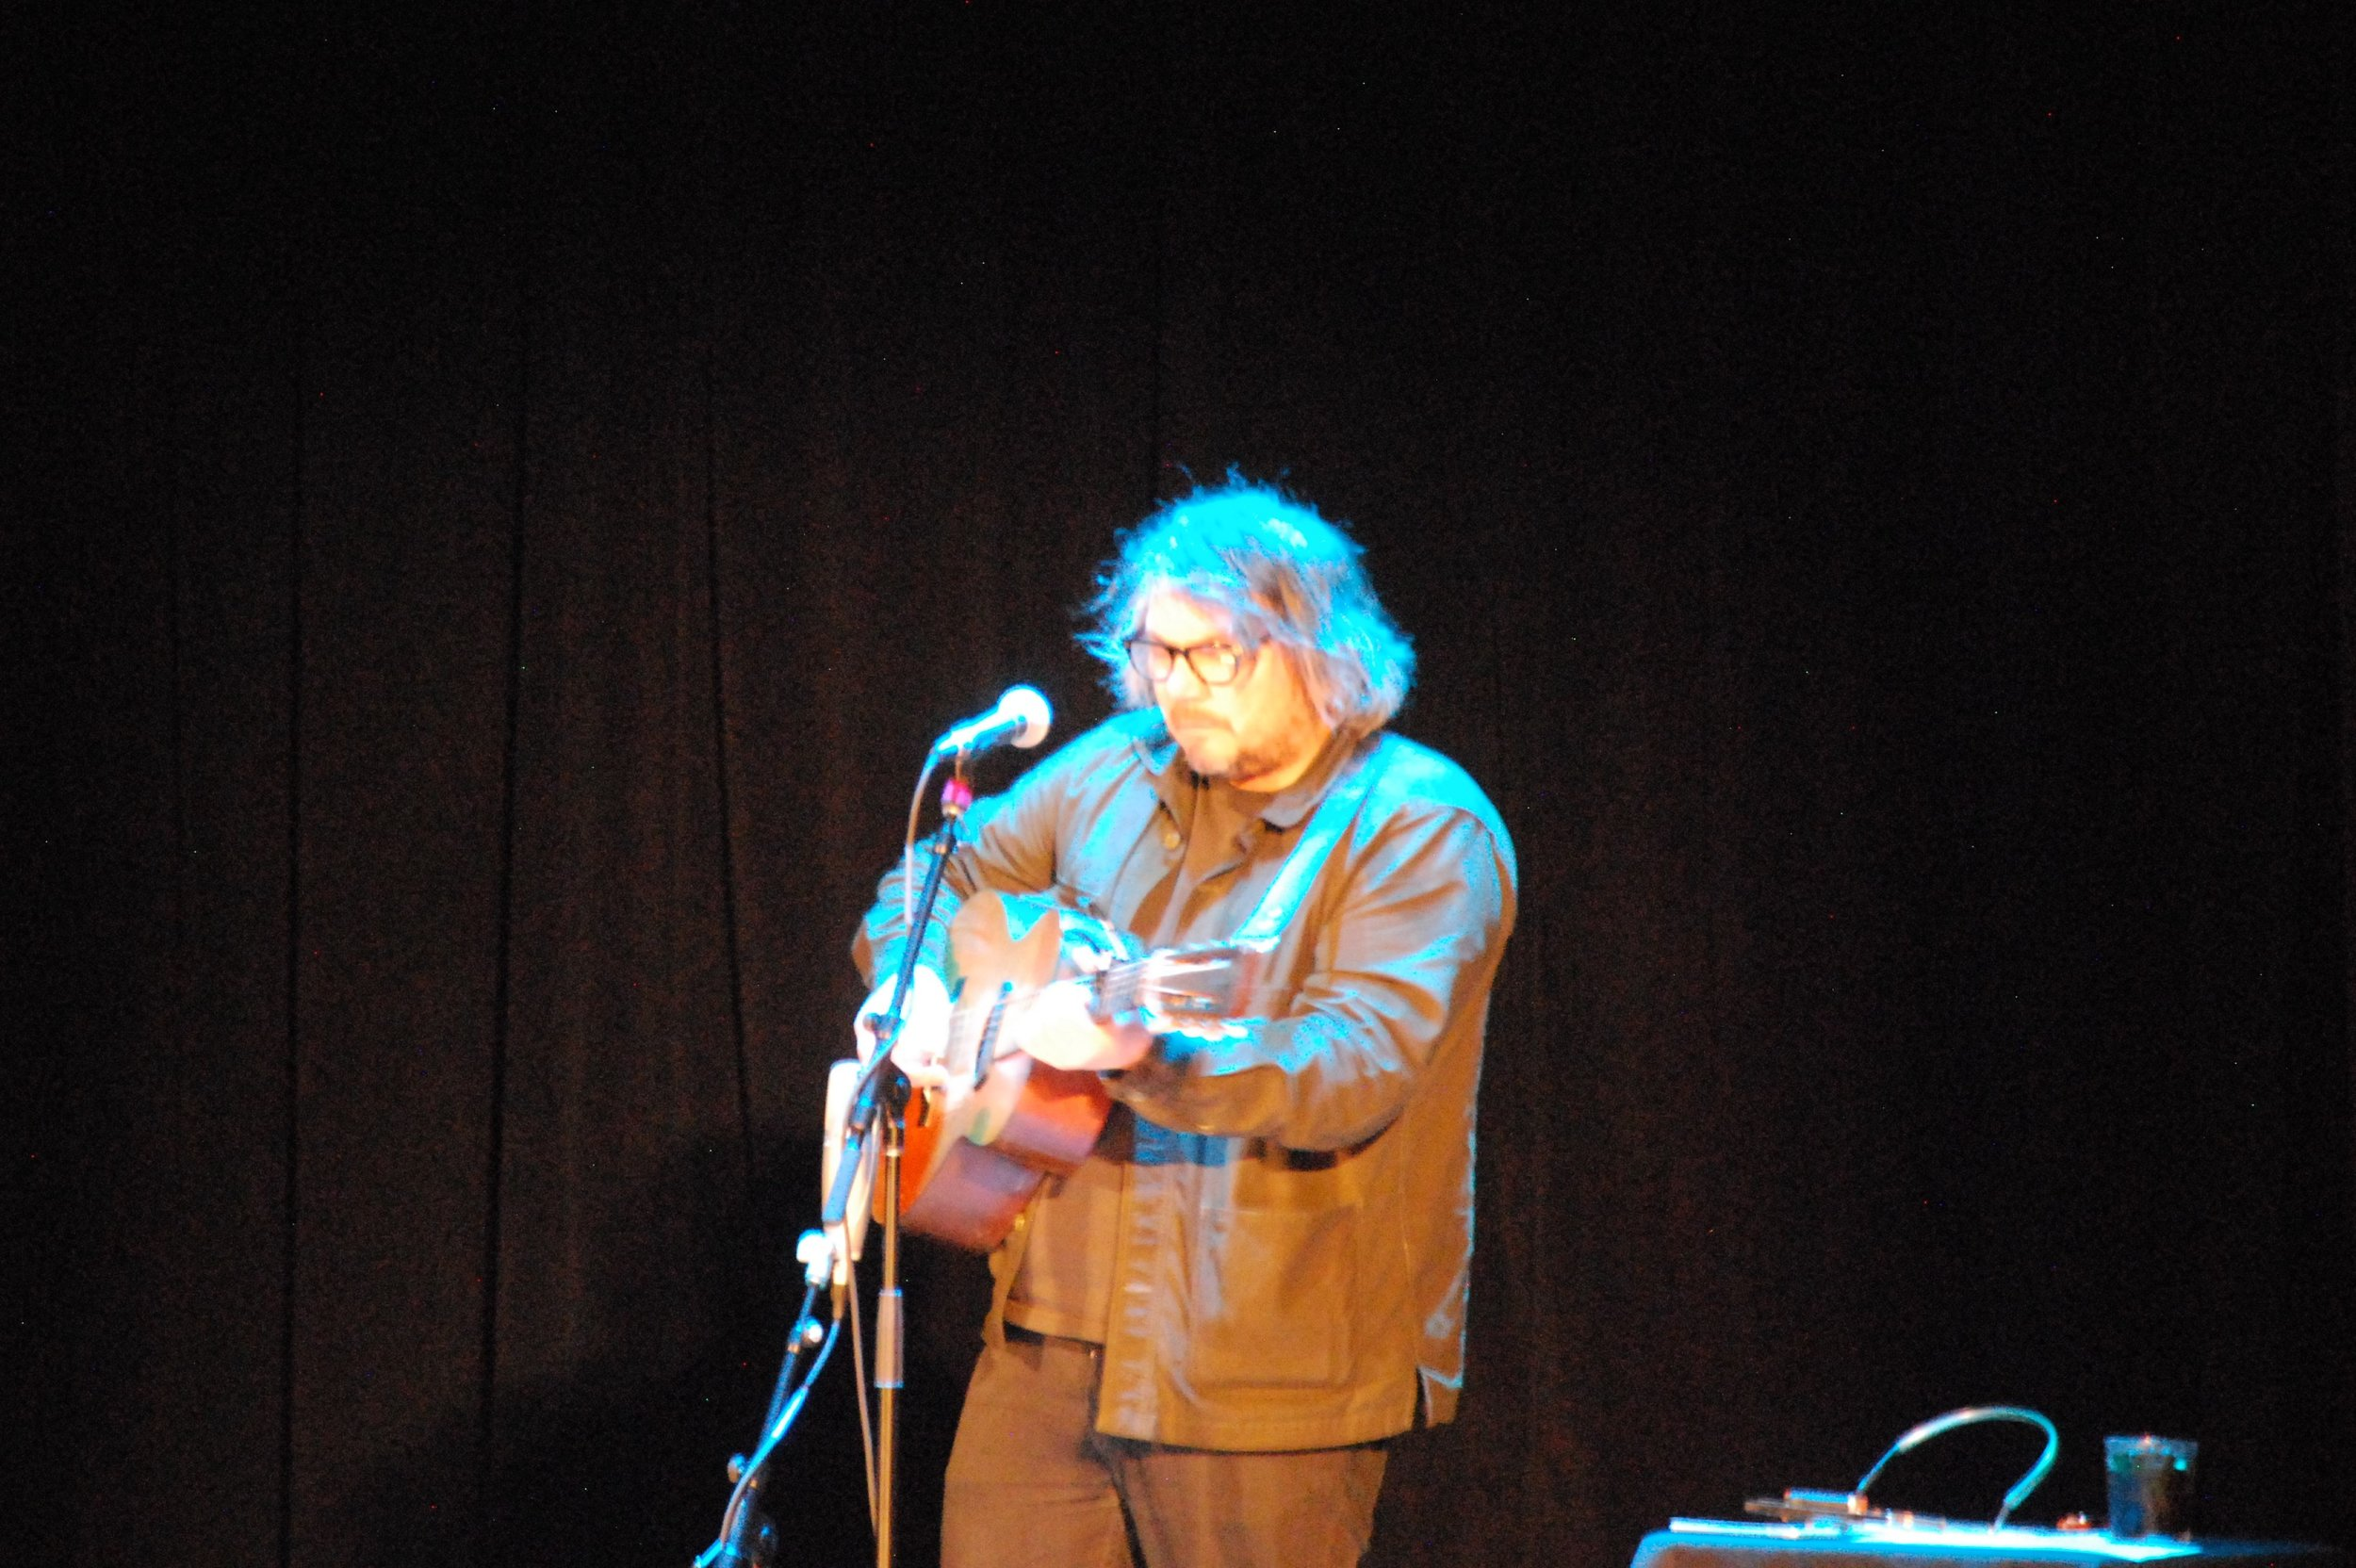 Jeff Tweedy performing at the Walker Theatre. (Photo: Jeremy Pickard)